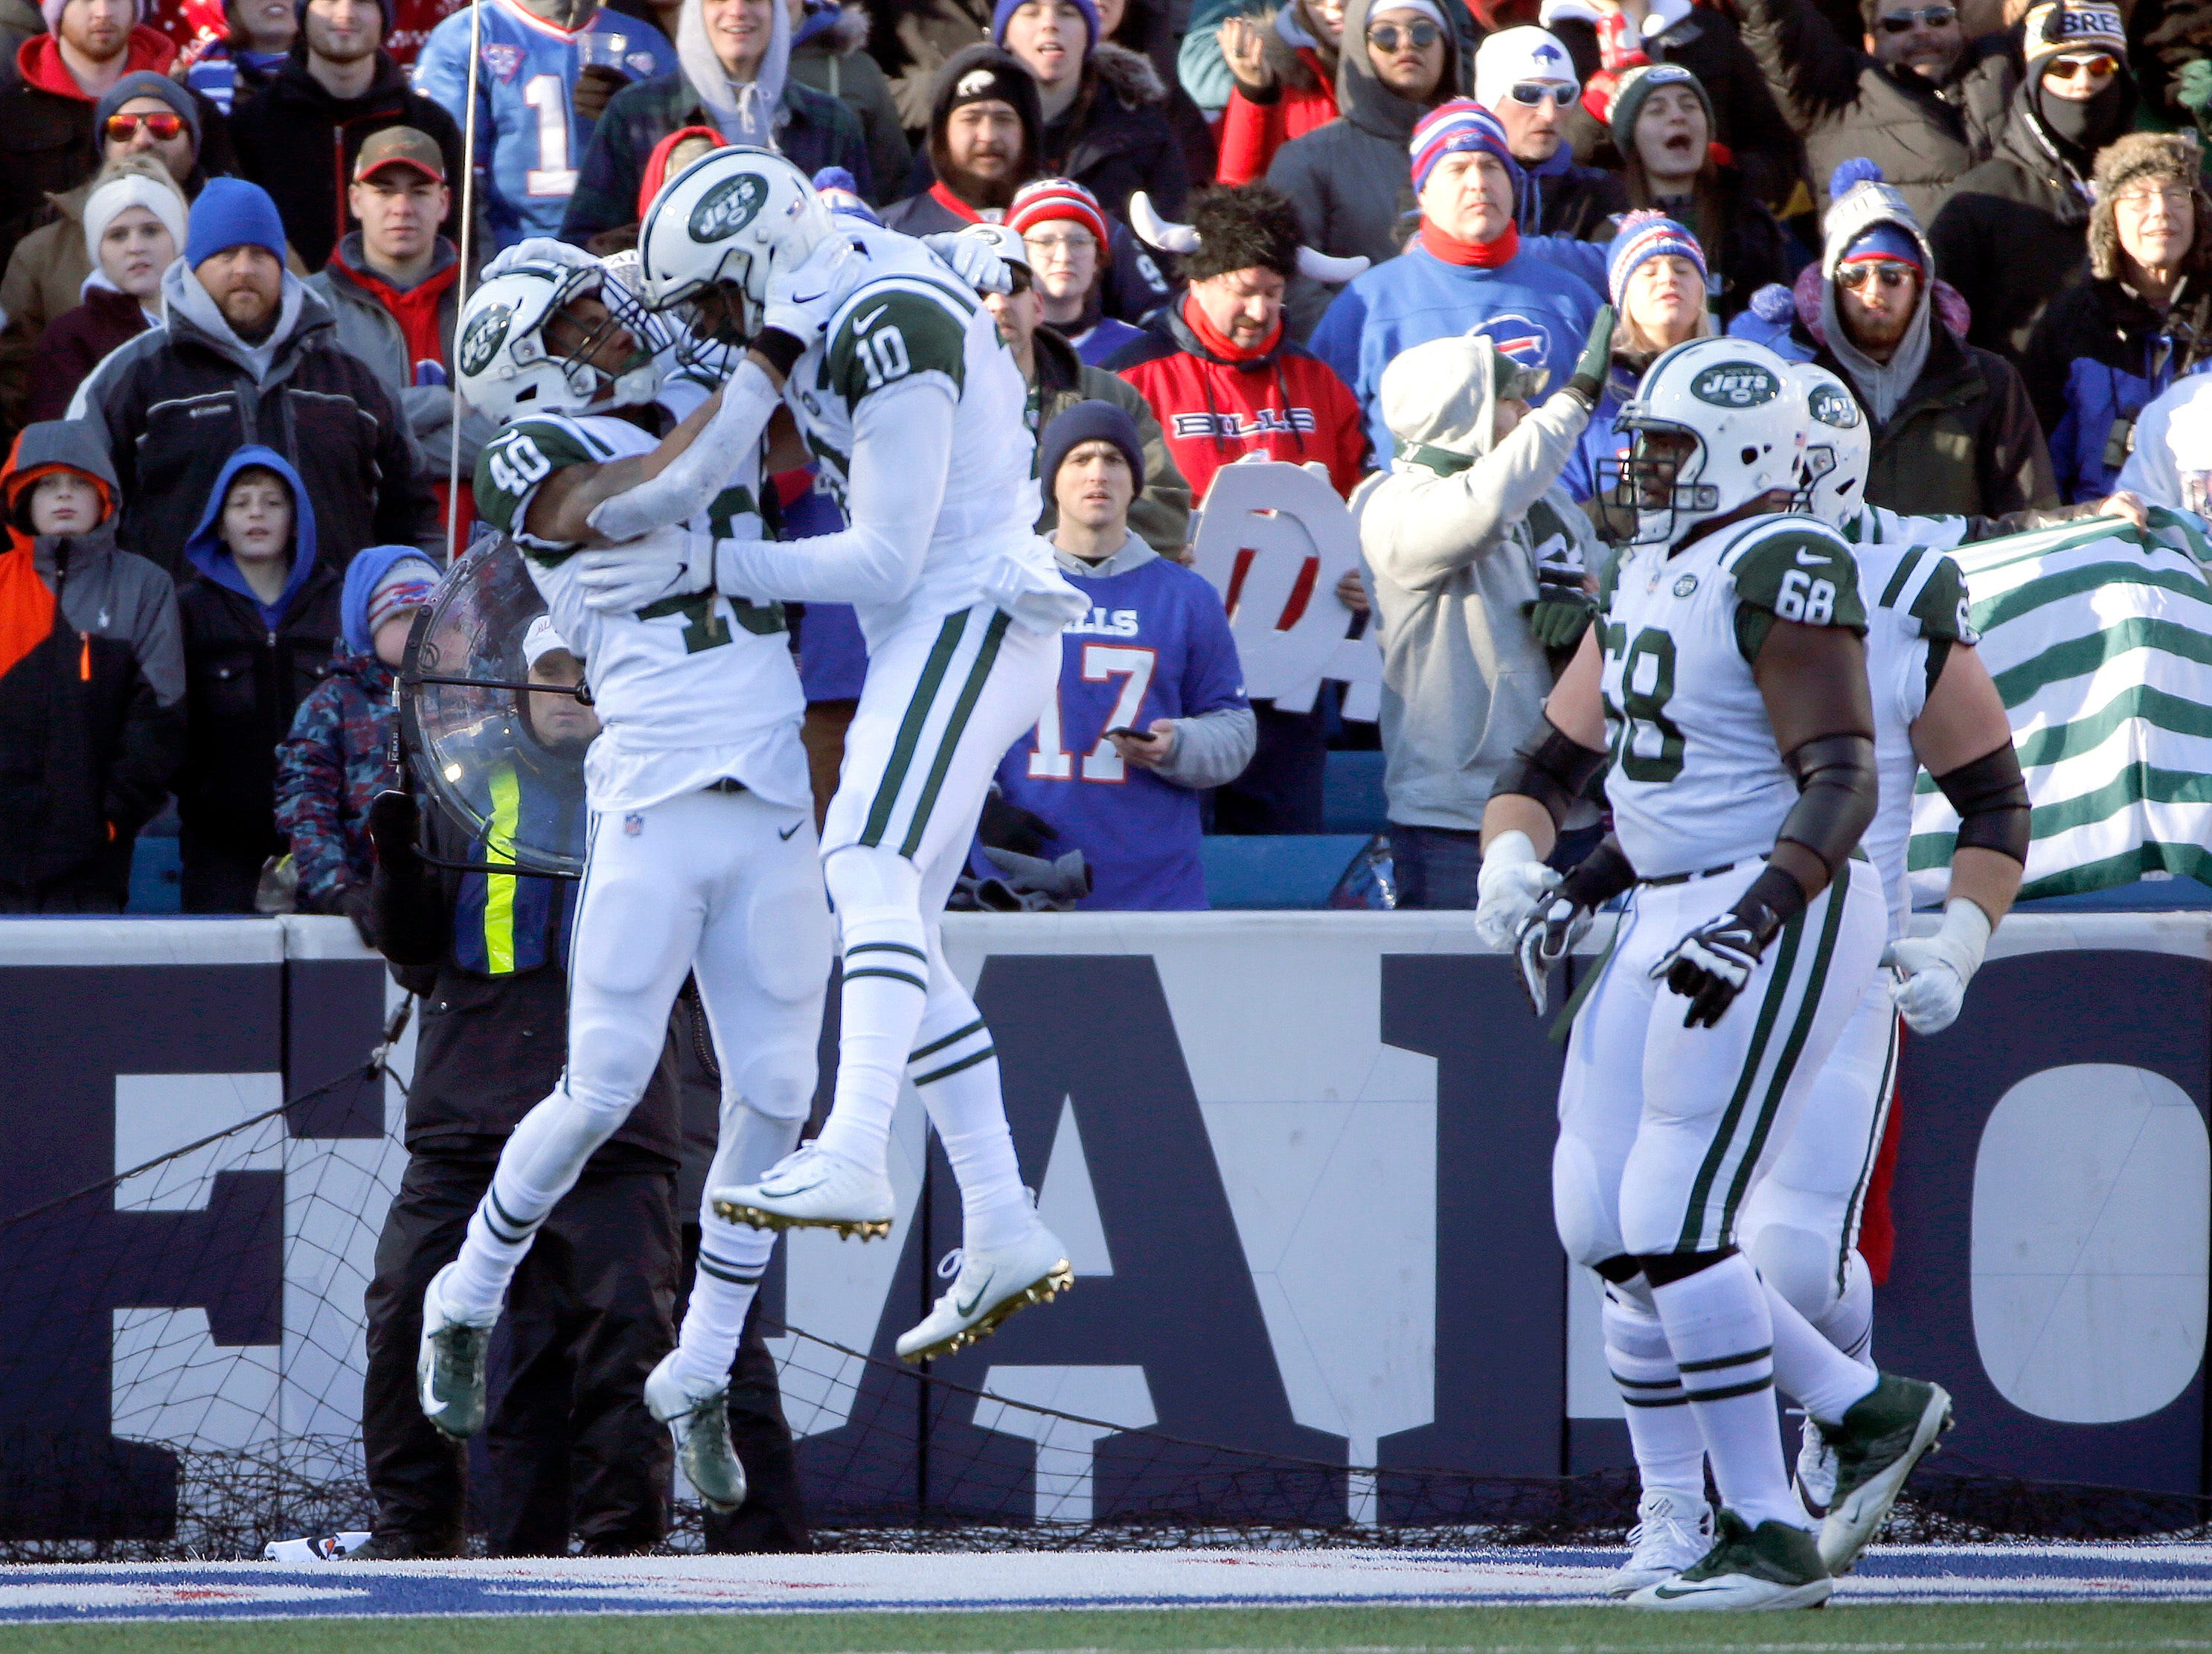 New York Jets running back Trenton Cannon (40) celebrates his touchdown run against the Buffalo Bills with Jermaine Kearse (10) during the first half of an NFL football game, Sunday, Dec. 9, 2018, in Orchard Park, N.Y. (AP Photo/Jeffrey T. Barnes)